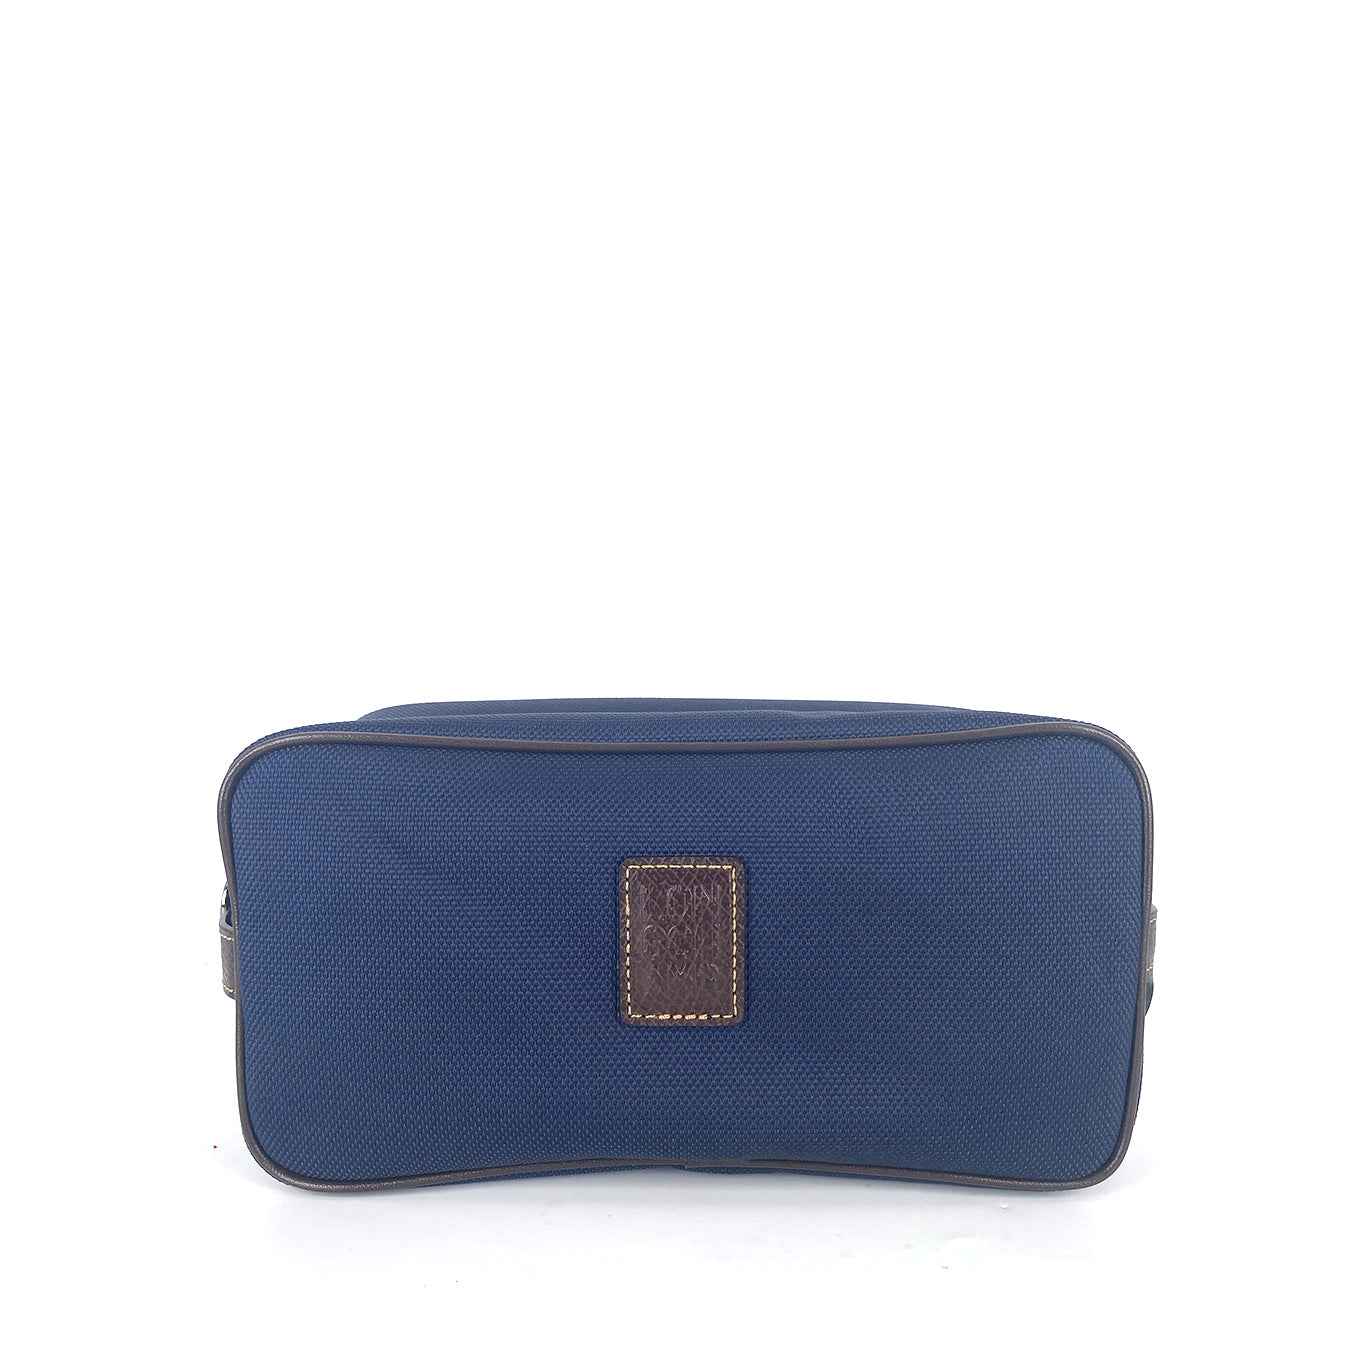 Longchamp Pouch Cosmetic Canvas Medium  in Dark Blue